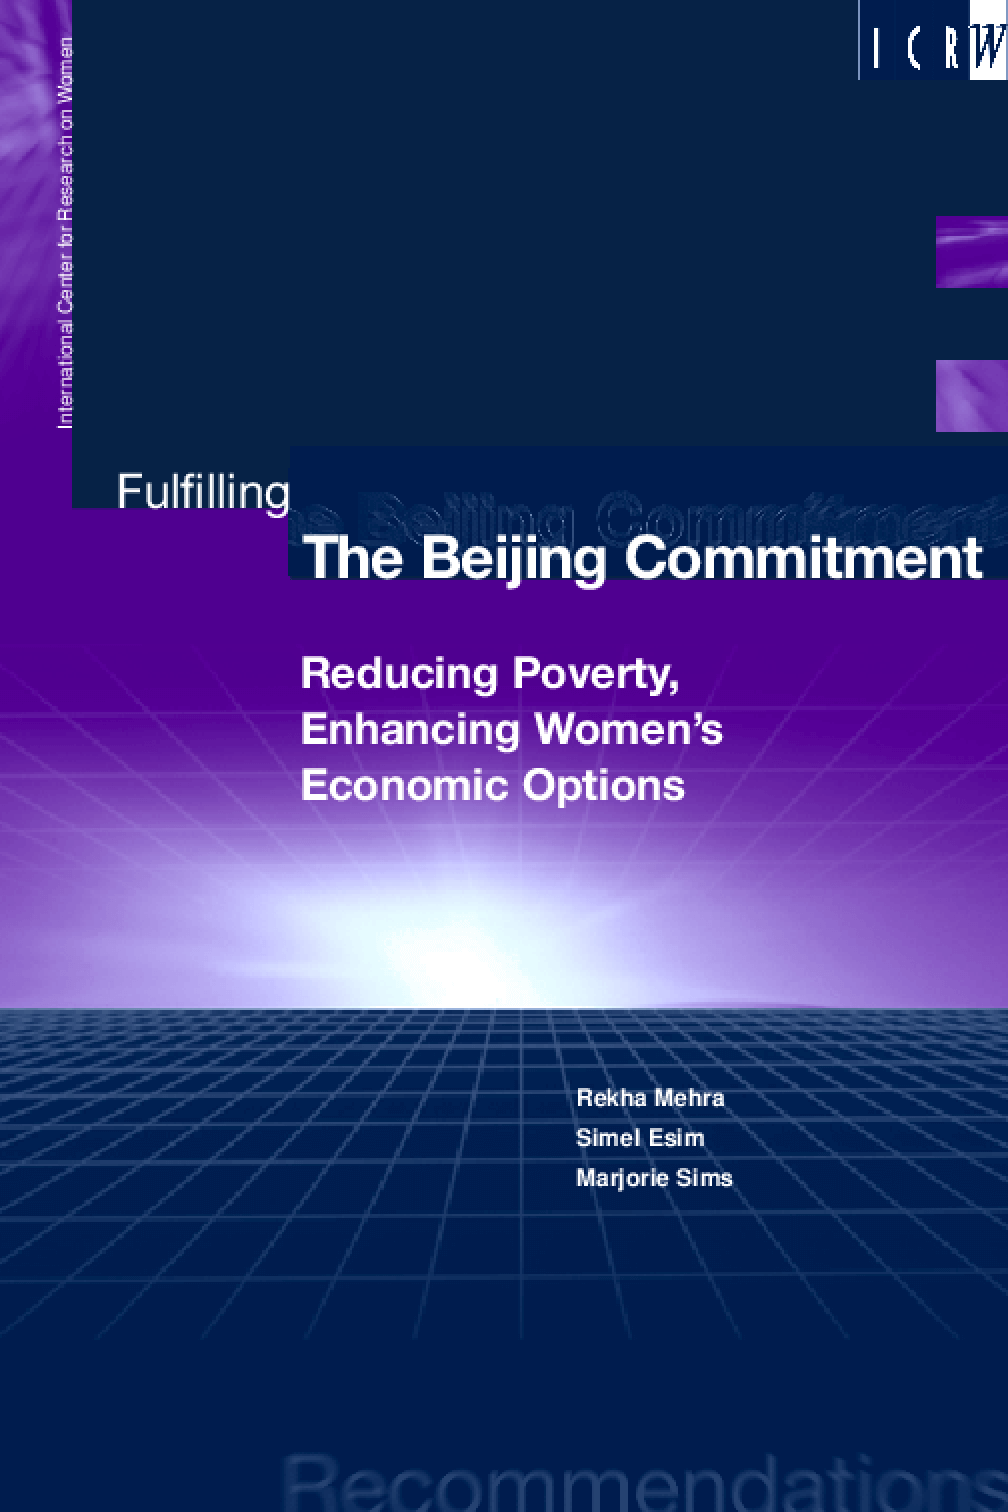 Fulfilling the Beijing Commitment: Reducing Poverty, Enhancing Women's Economic Options